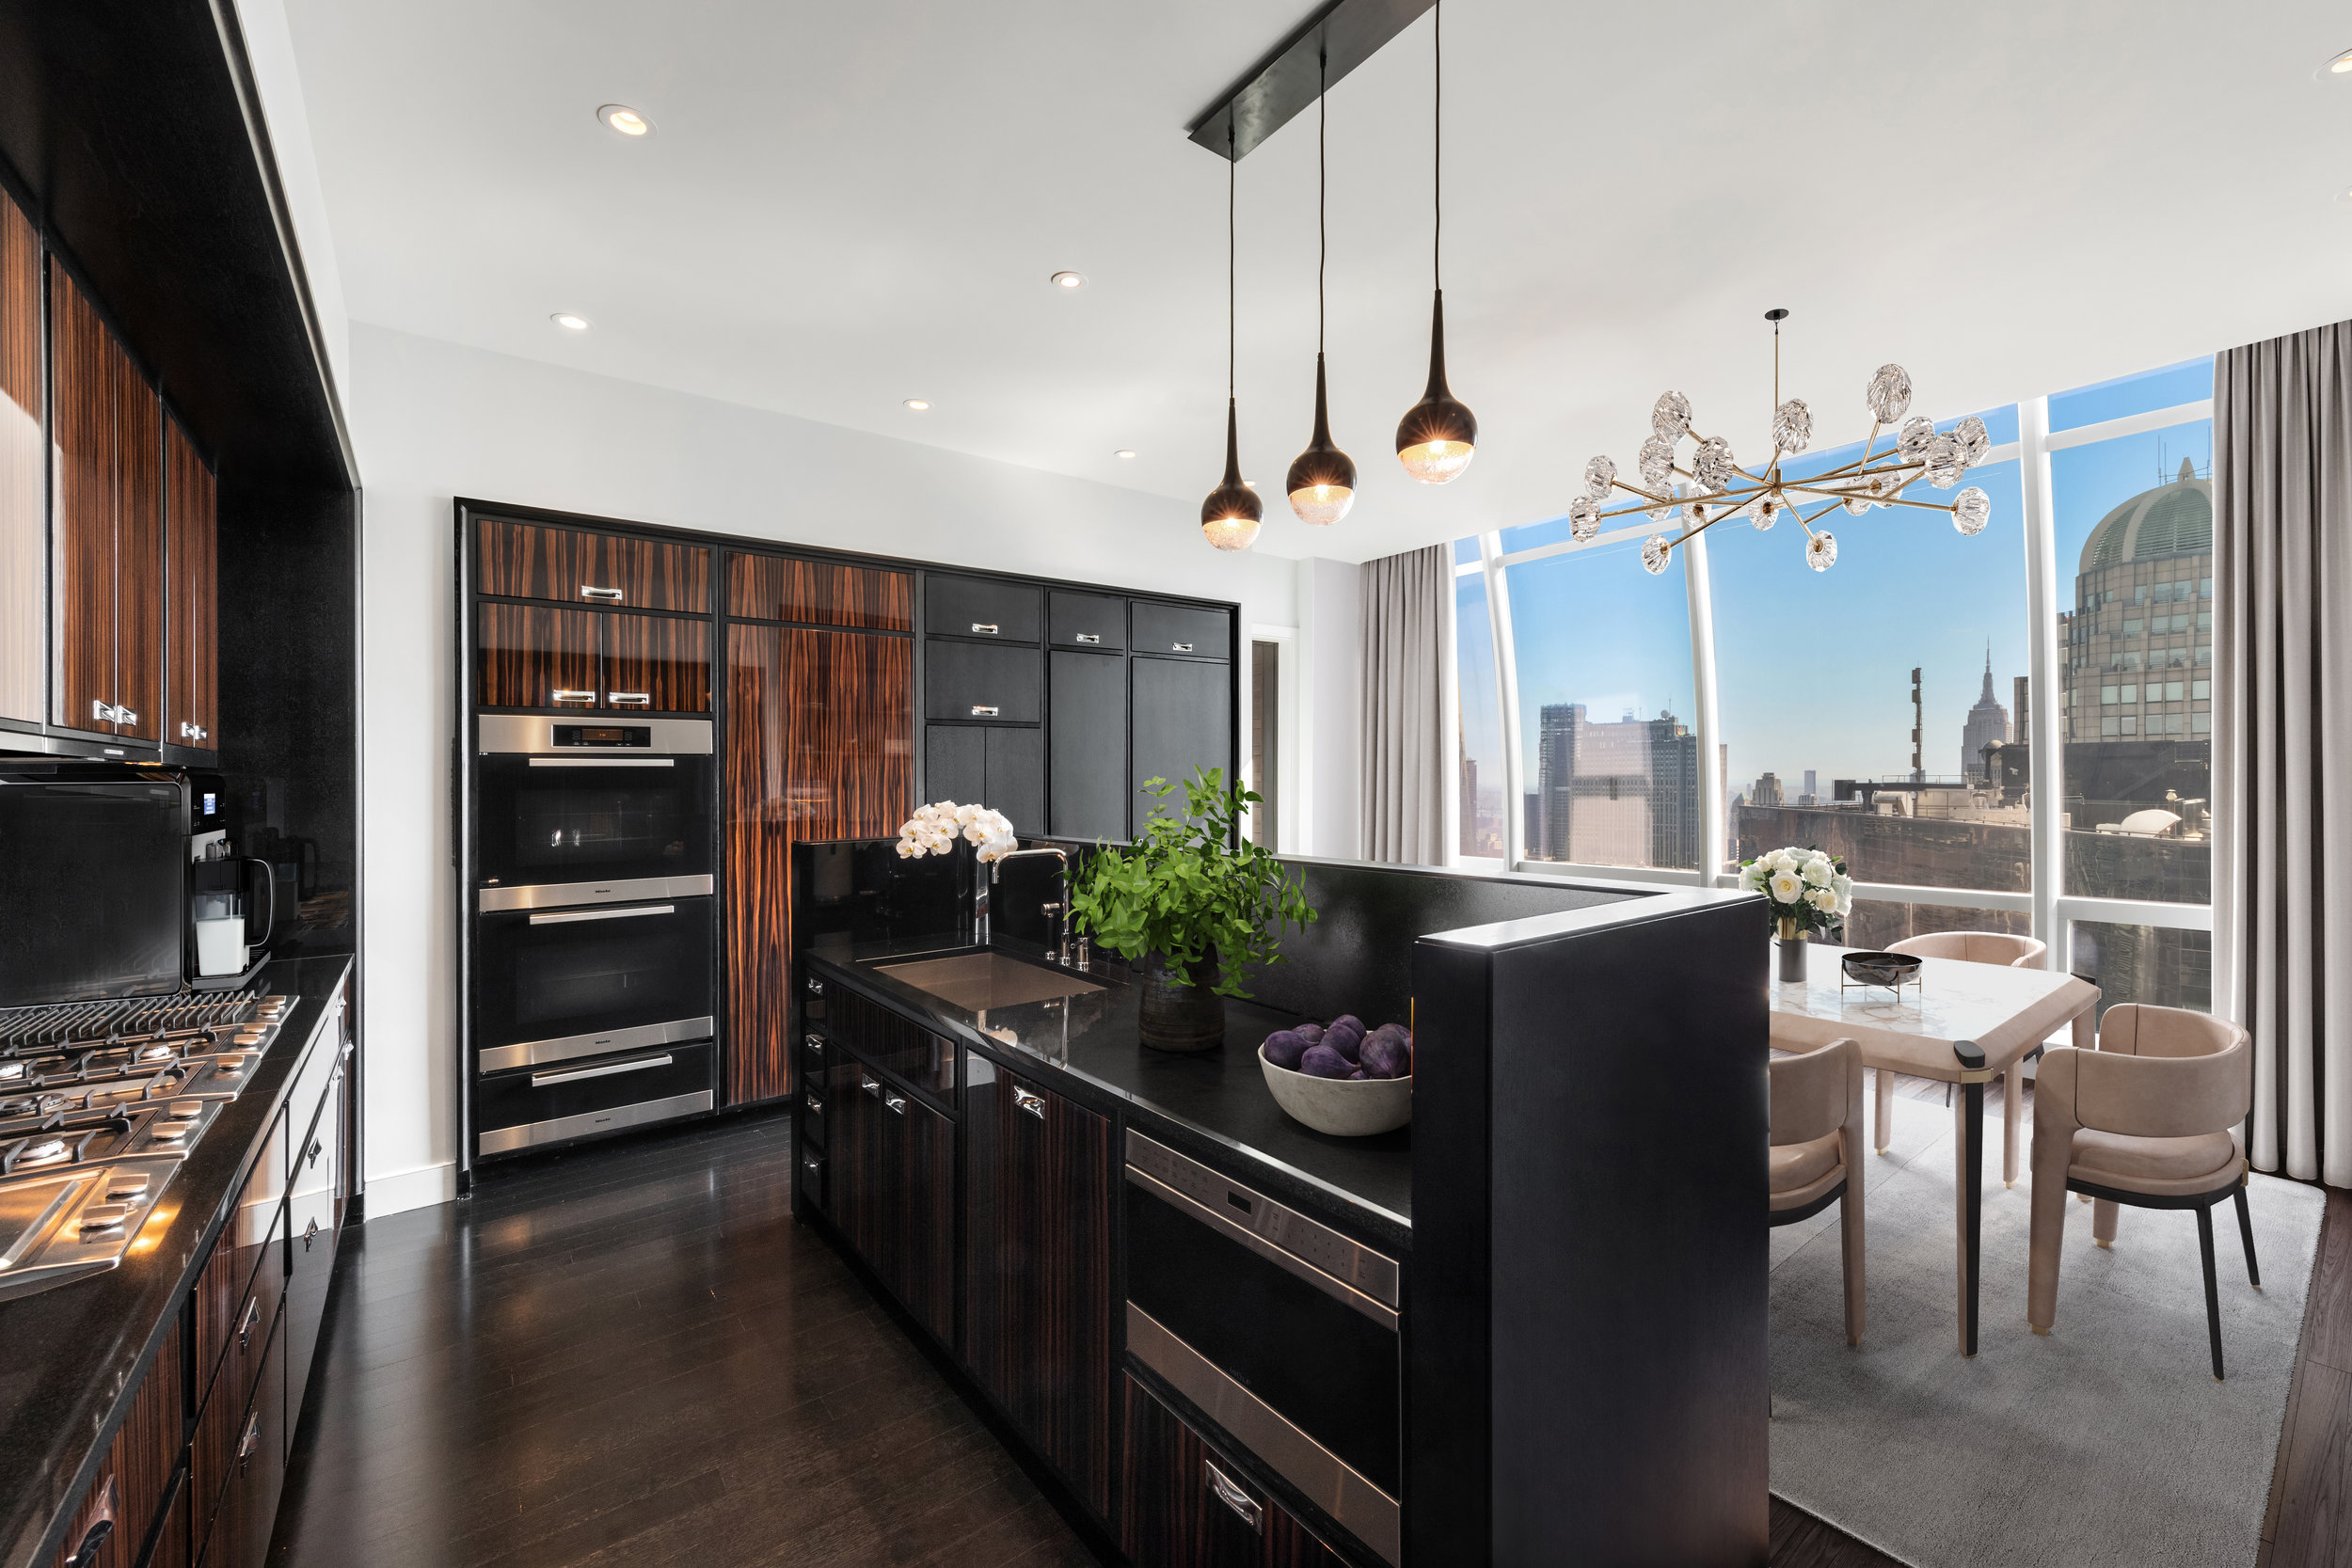 One57157West57thSt67B-CentralParkSouthNewYork_Anthony_Barillo_DouglasElliman_Photography_76924741_high_res.jpg